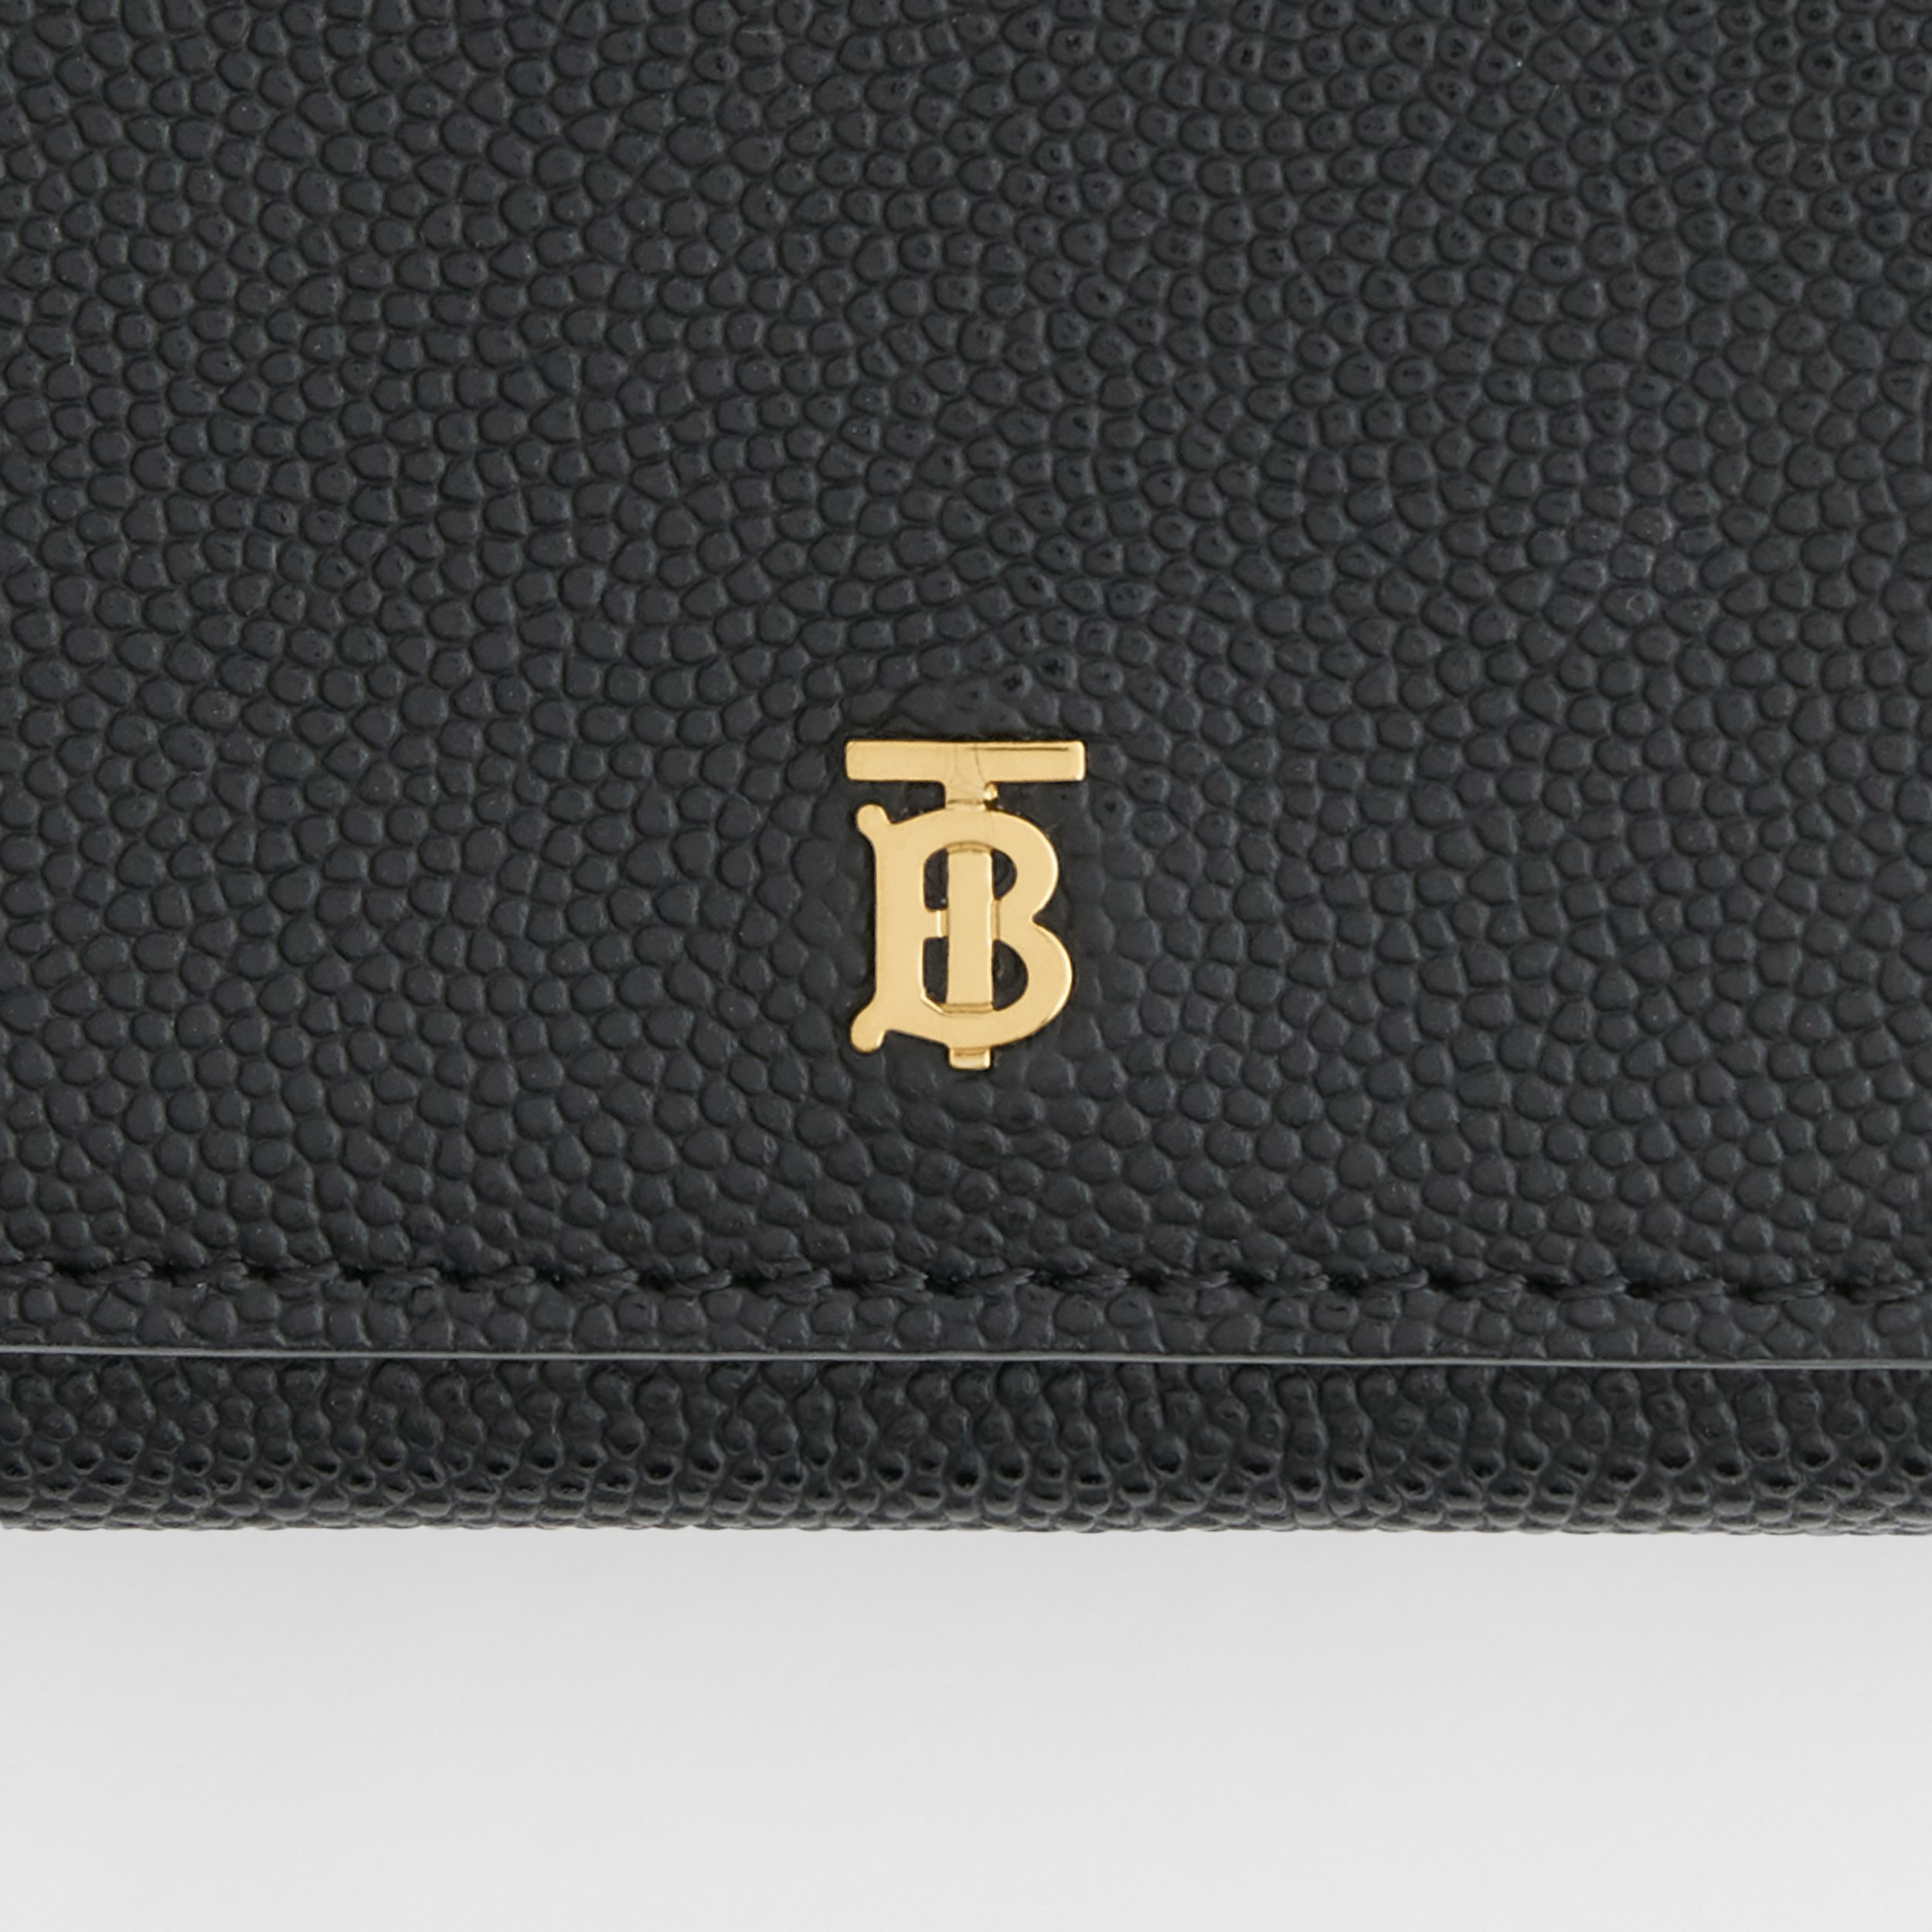 Monogram Motif Grainy Leather Folding Wallet in Black - Women | Burberry - 2